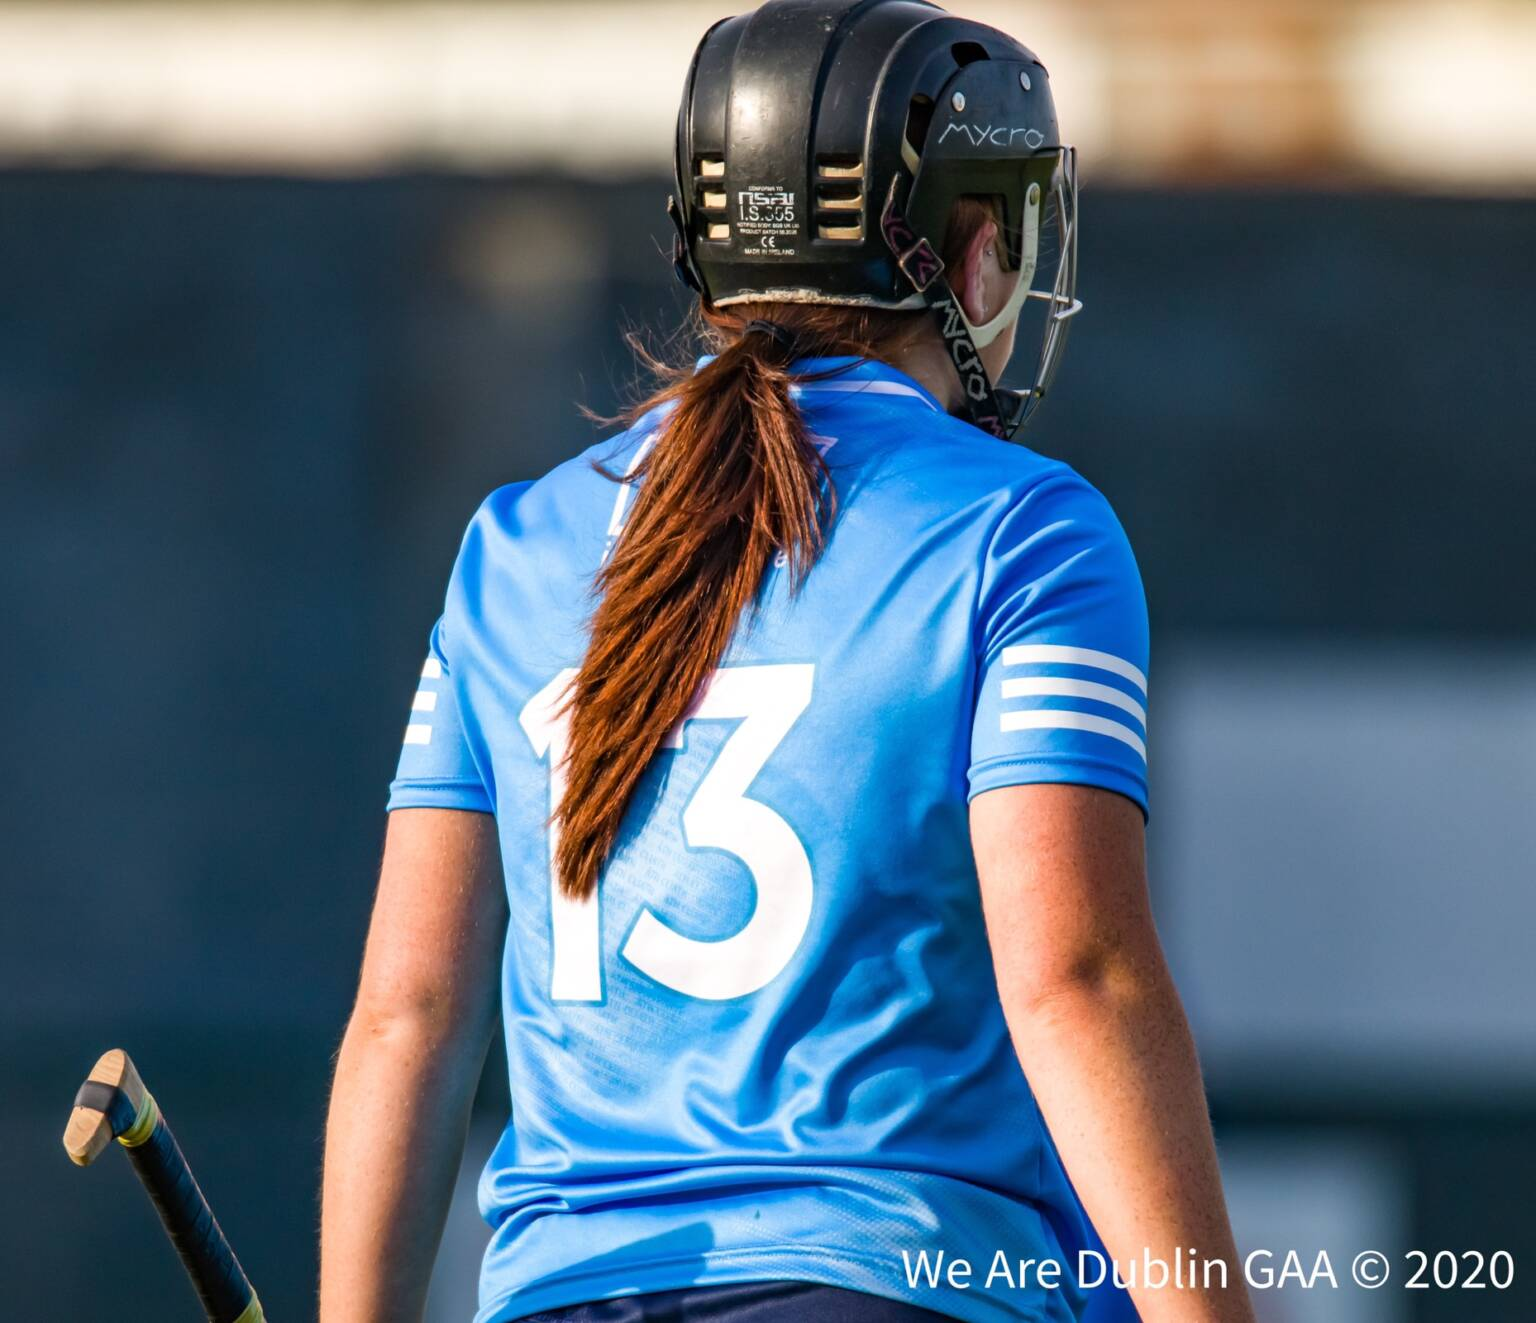 Dublin Senior Camogie player with the number 13 on the back of her jersey waits for the action to restart after the water break, Dublin interim manager Dave Dunning makes four changes to his side for the game against Clare.